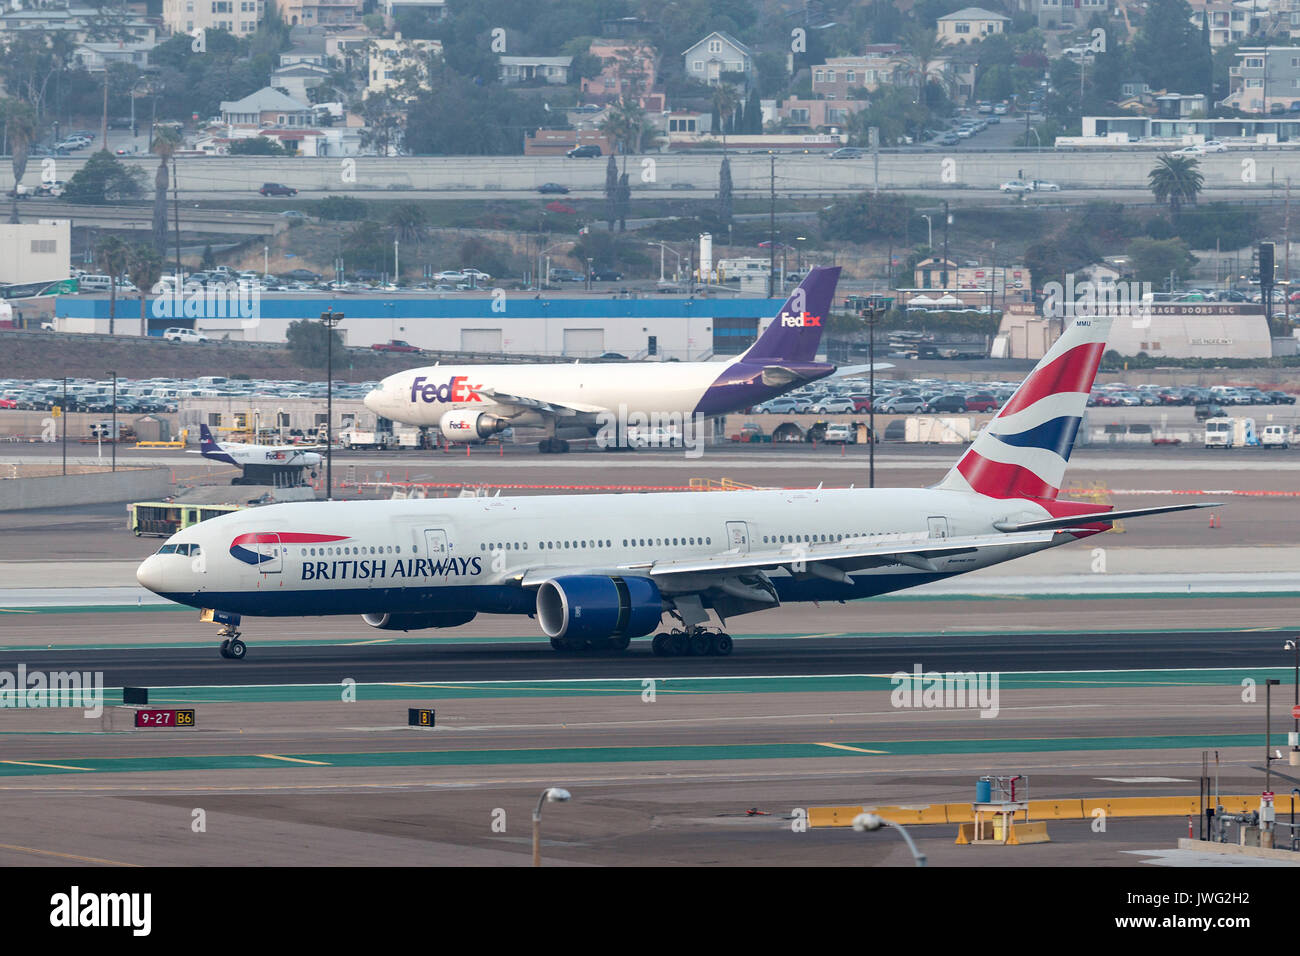 British Airways Boeing 777-236/ER G-YMMU arriving at San Diego International Airport. - Stock Image